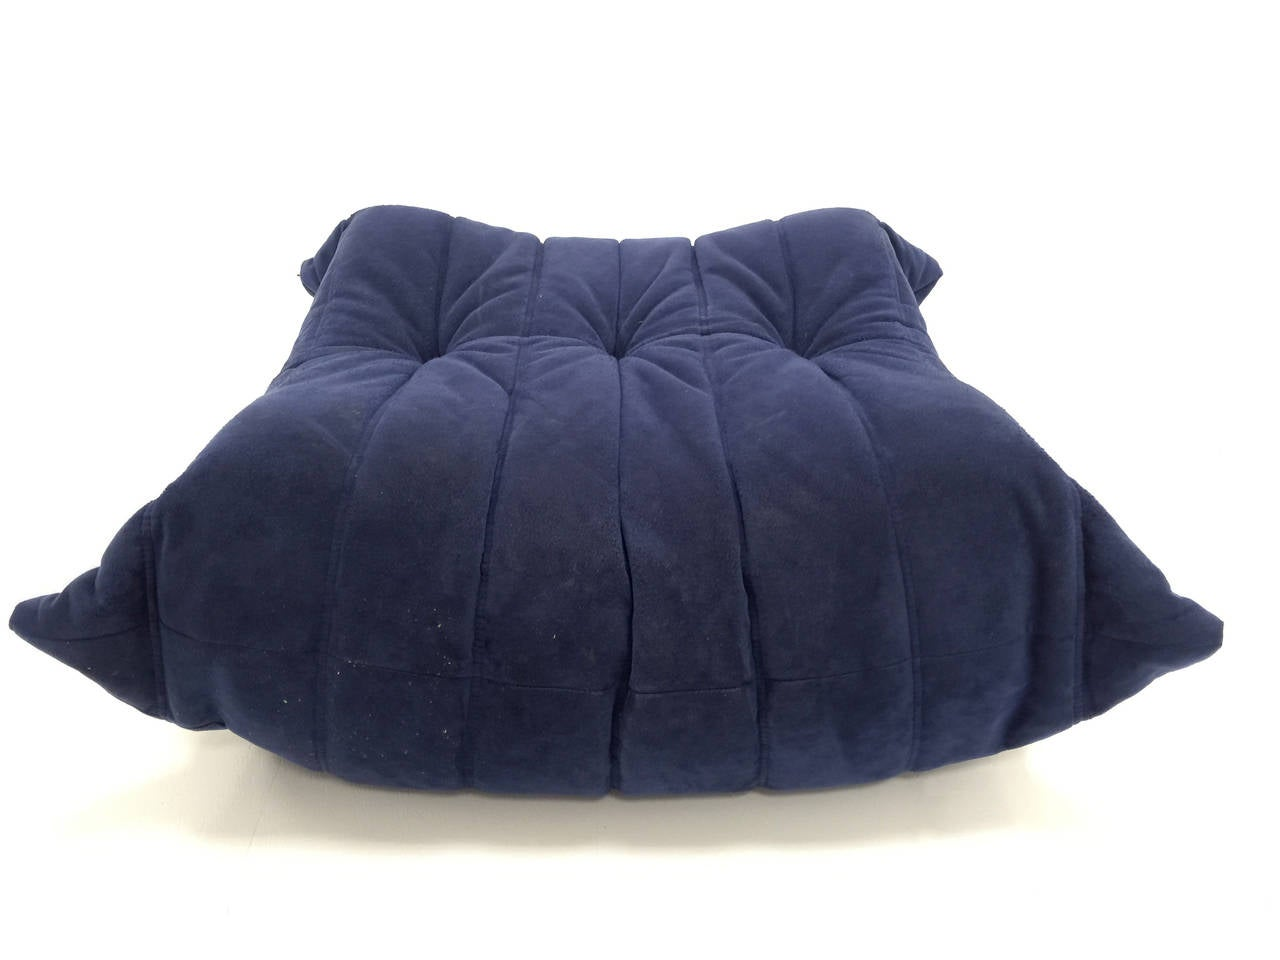 pair of ligne roset 39 togo 39 sofa ottomans by michel ducaroy at 1stdibs. Black Bedroom Furniture Sets. Home Design Ideas